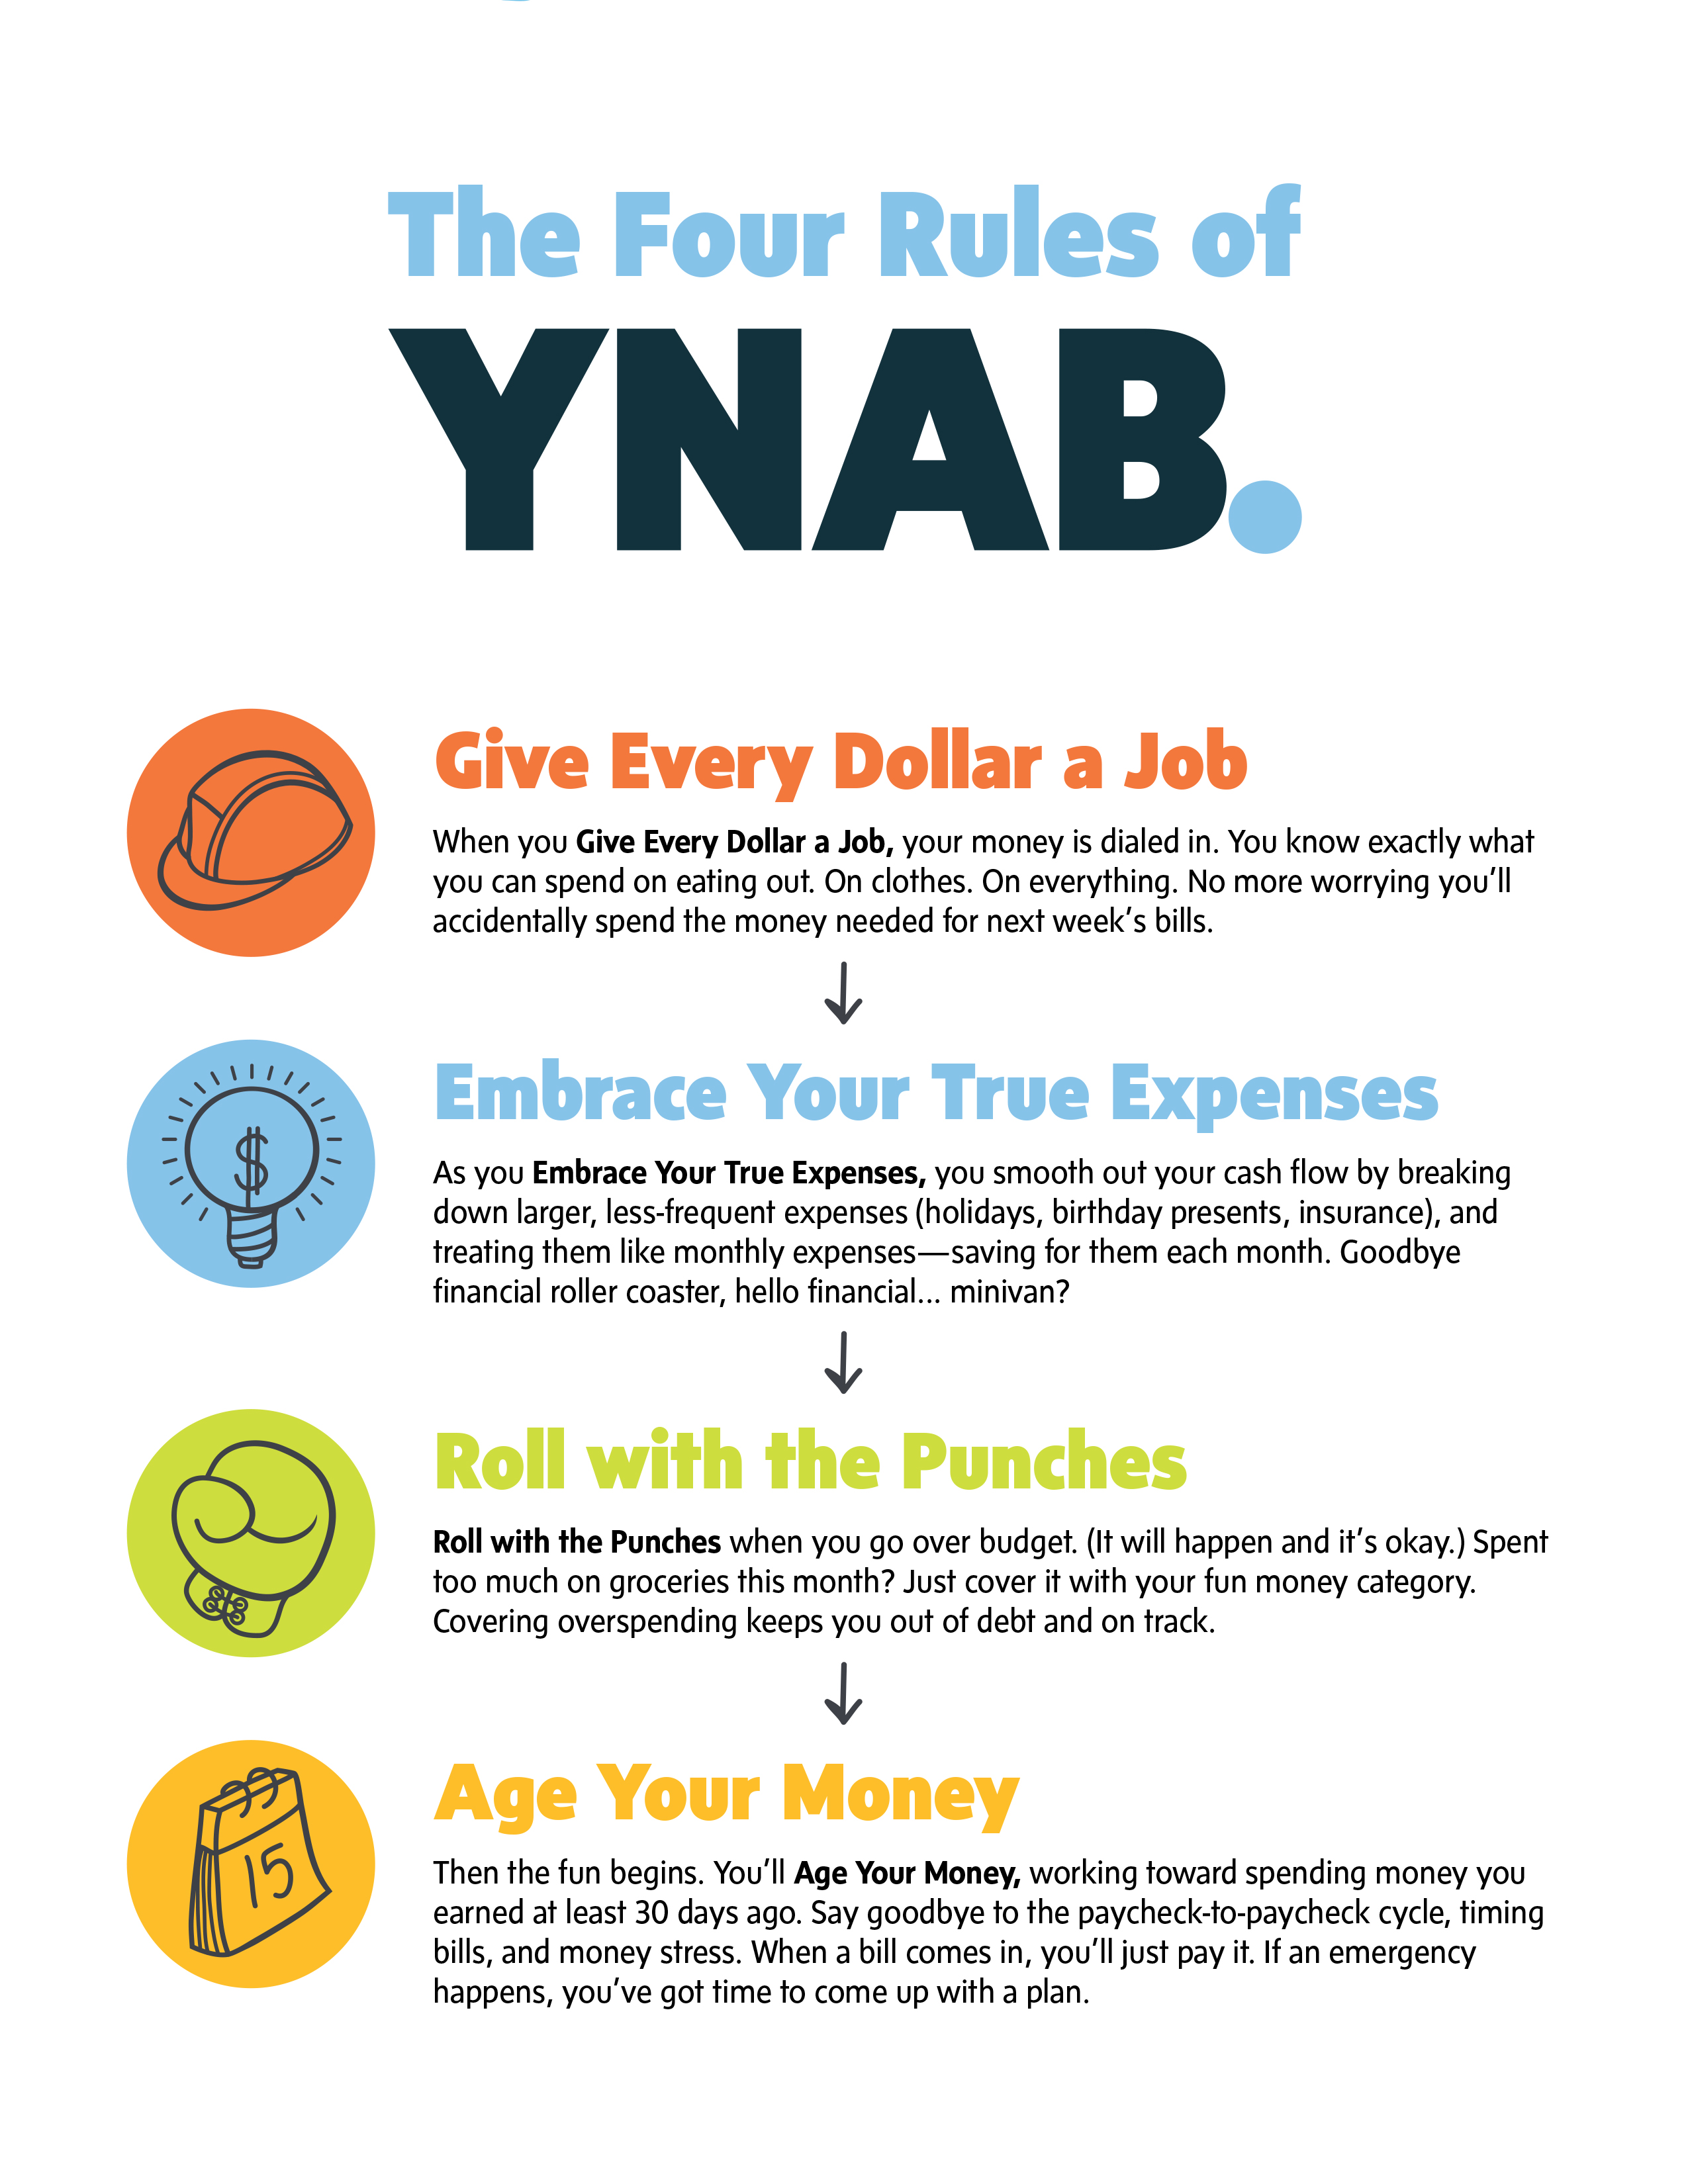 How To Use YNAB for your Small Business | Stephen Marsh